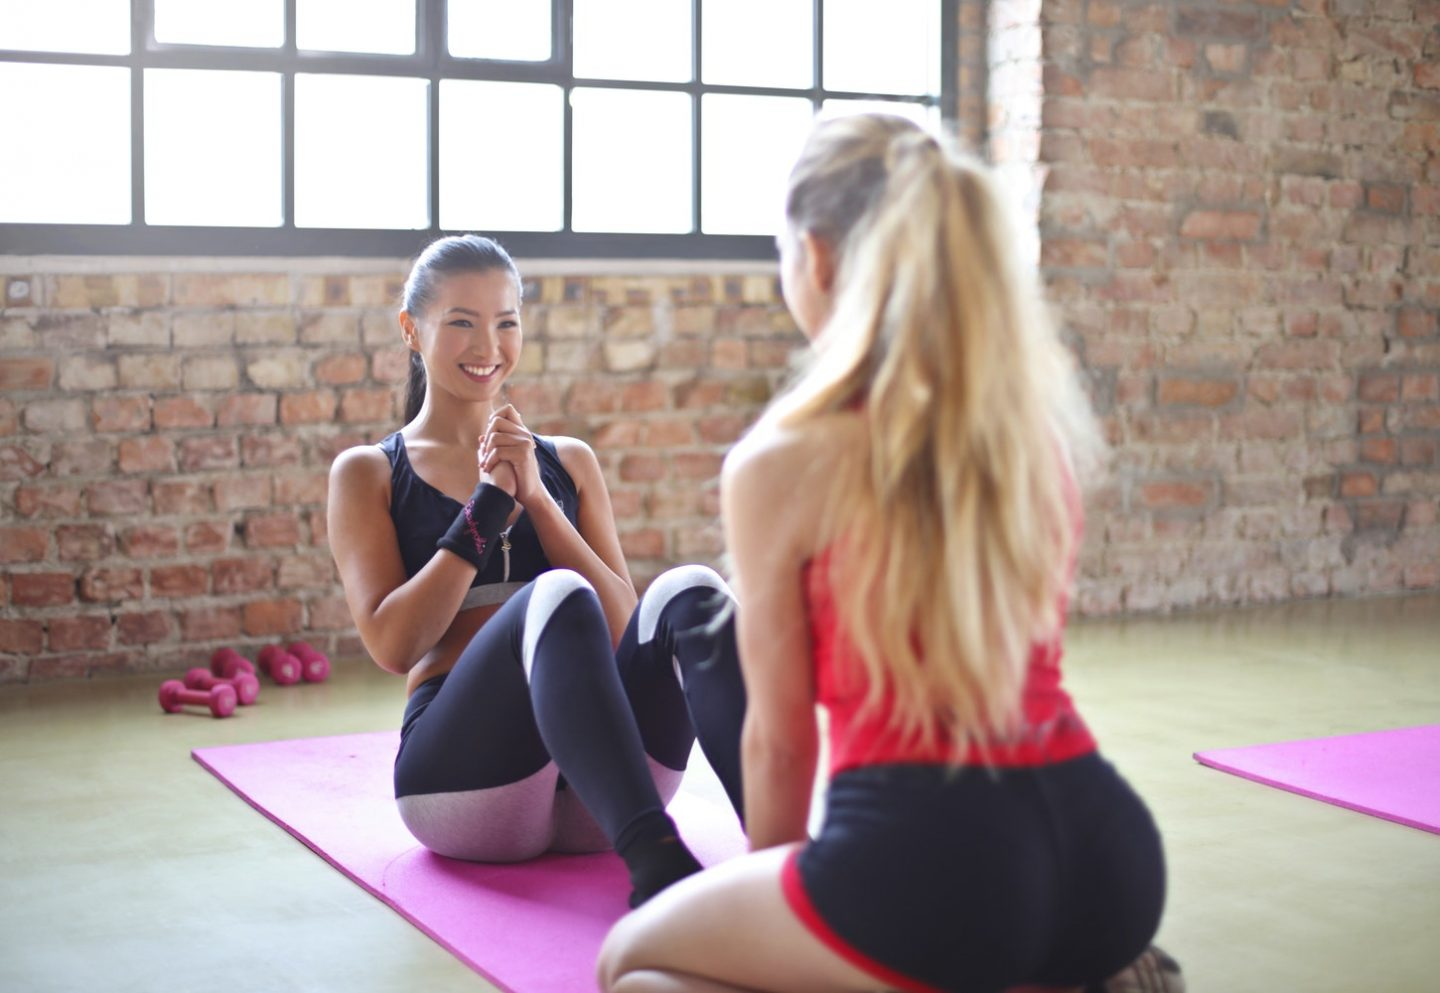 How to Help your Friend Get Healthier